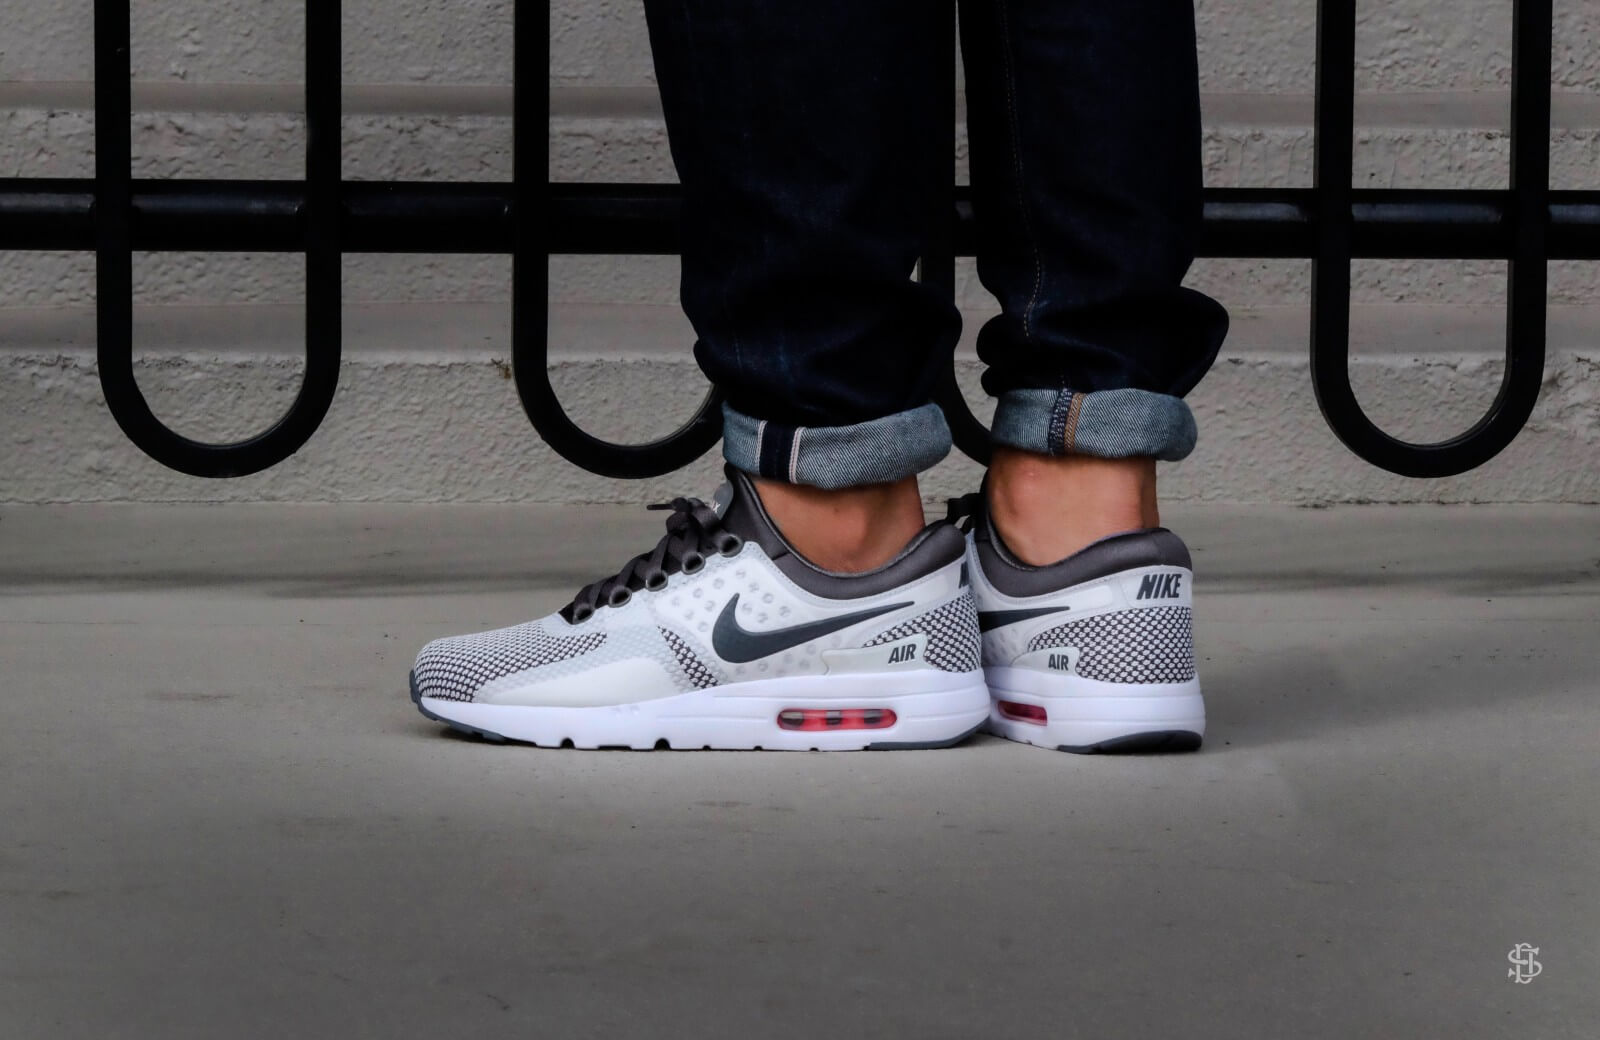 Nike Air Max Zero Essential Dark GreySummit White 876070 008